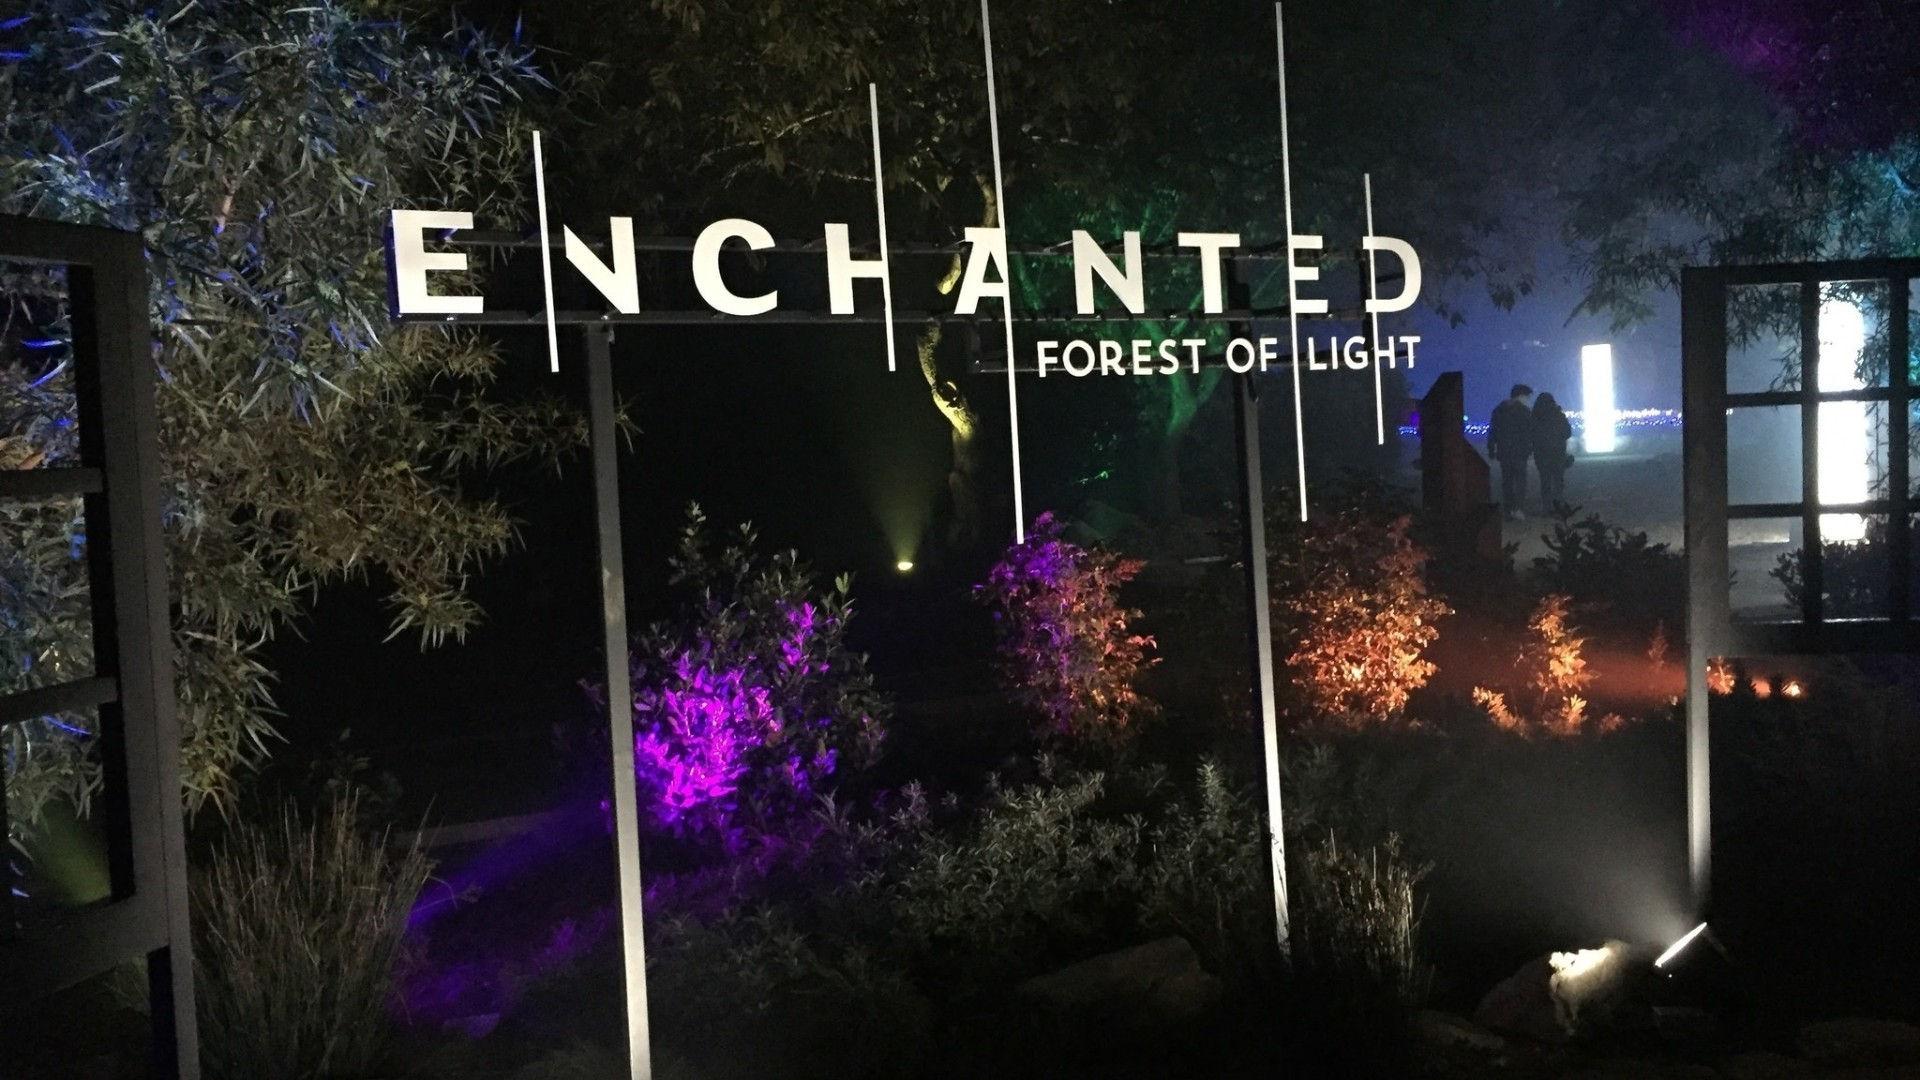 Descanso garden 39 s enchanted forest la times - Descanso gardens enchanted forest of light ...